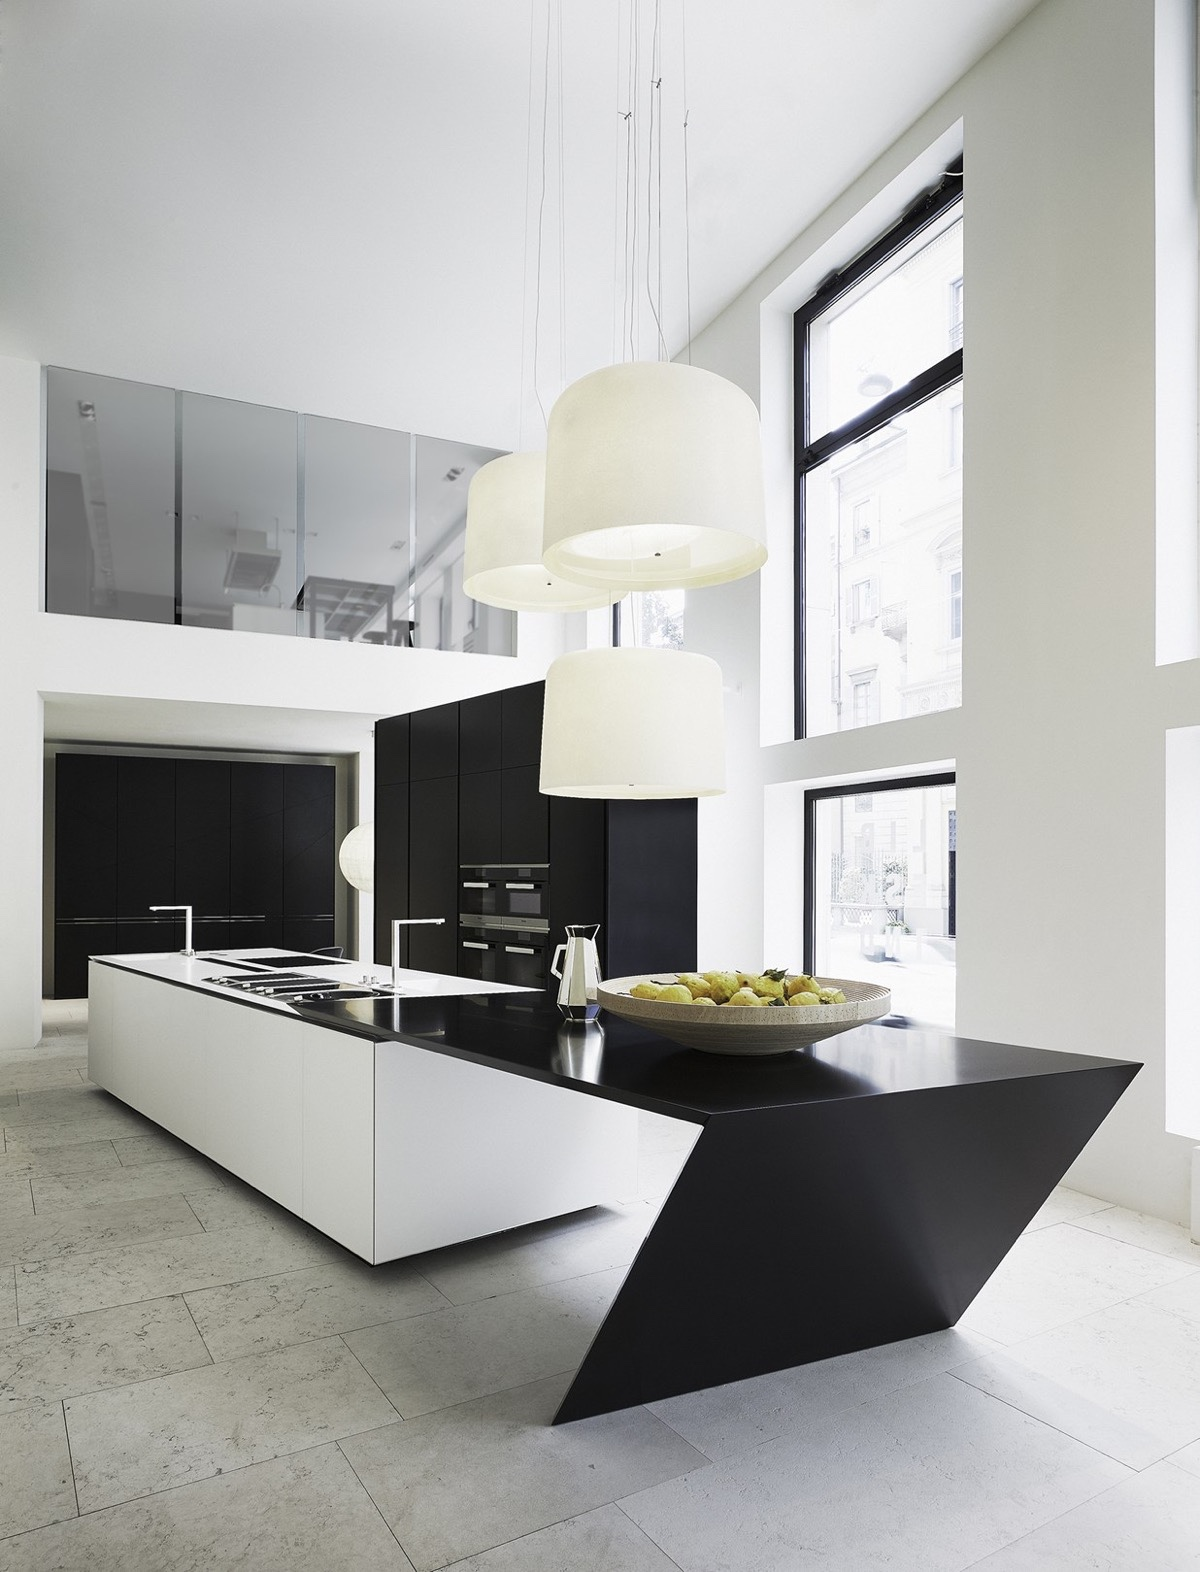 black-and-white-kitchen-island-with-sink